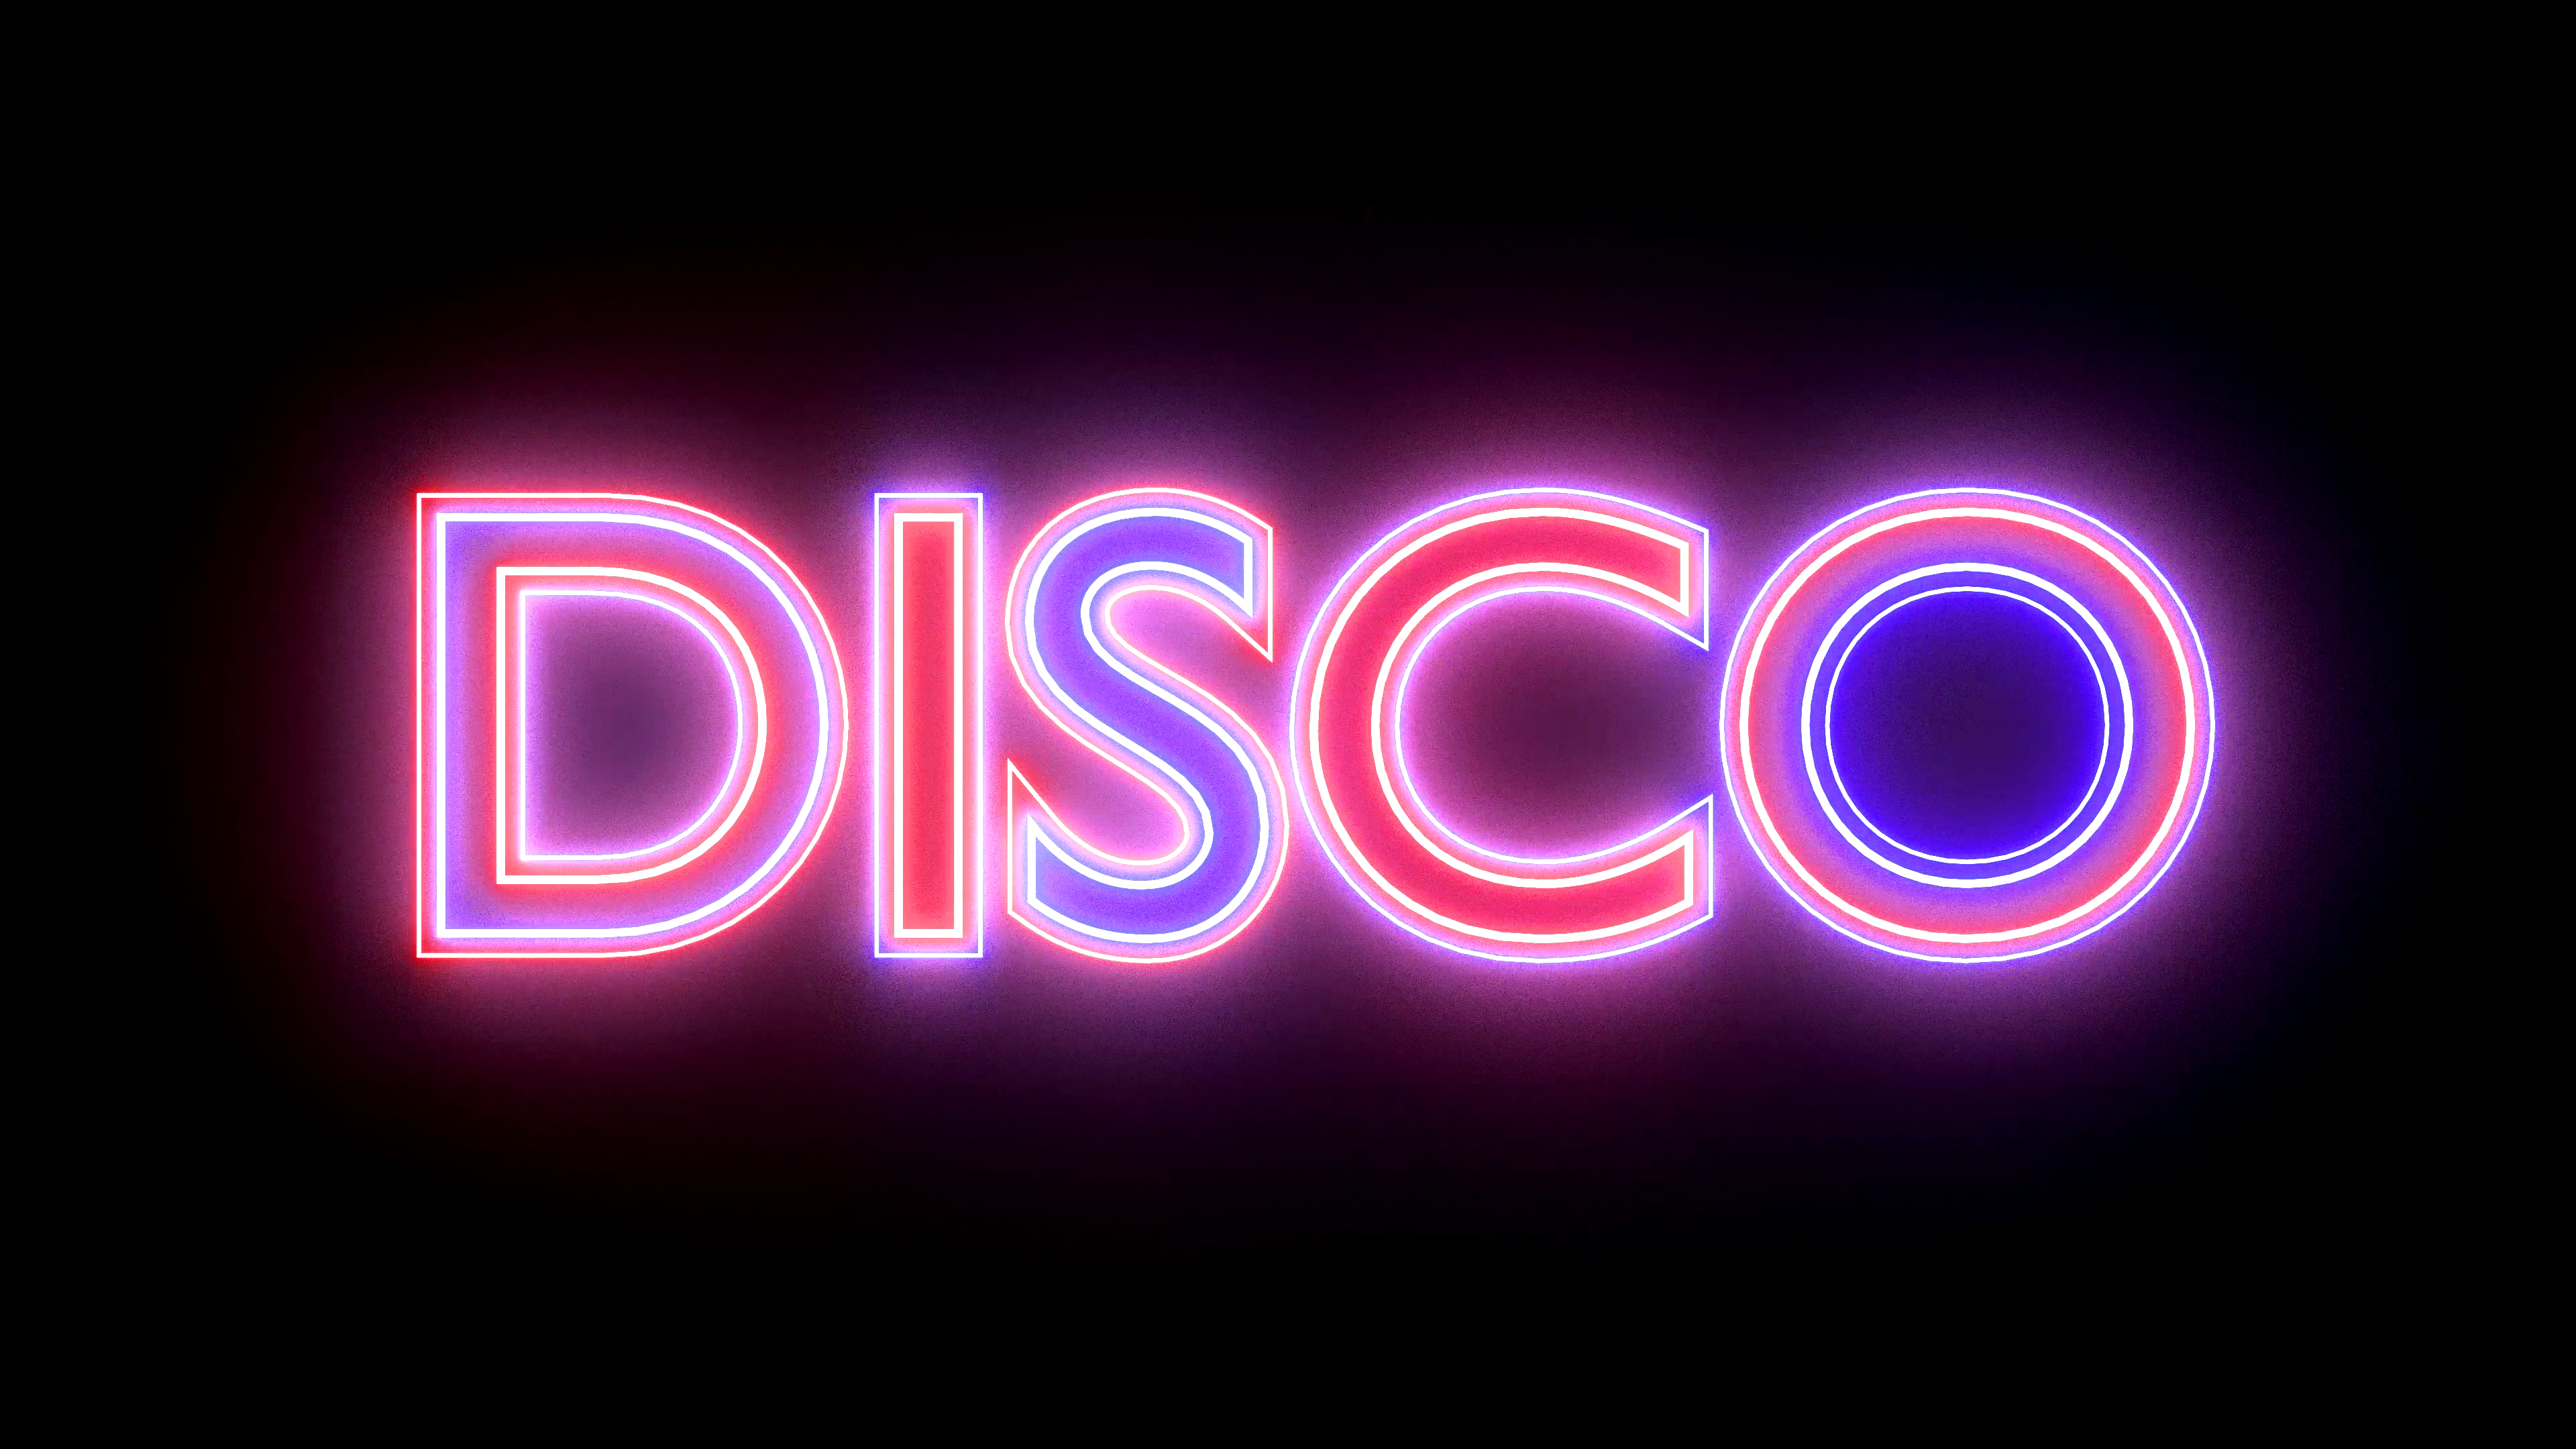 Disco neon sign lights logo text glowing multicolor 4K Motion Background.